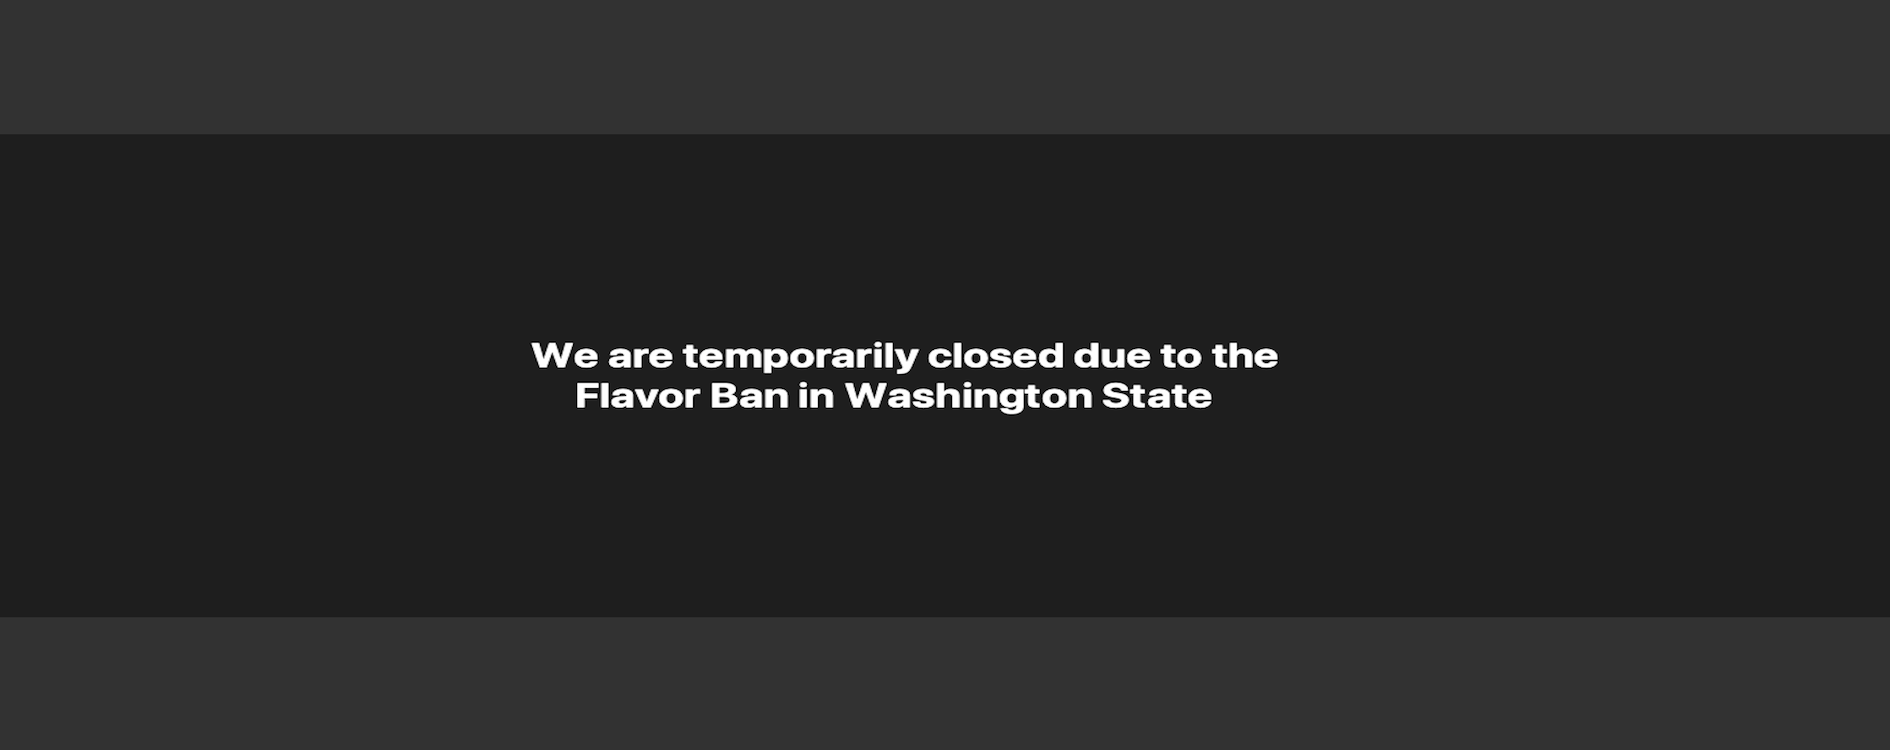 We are temporarily closed due to the Flavor Ban in Washington State